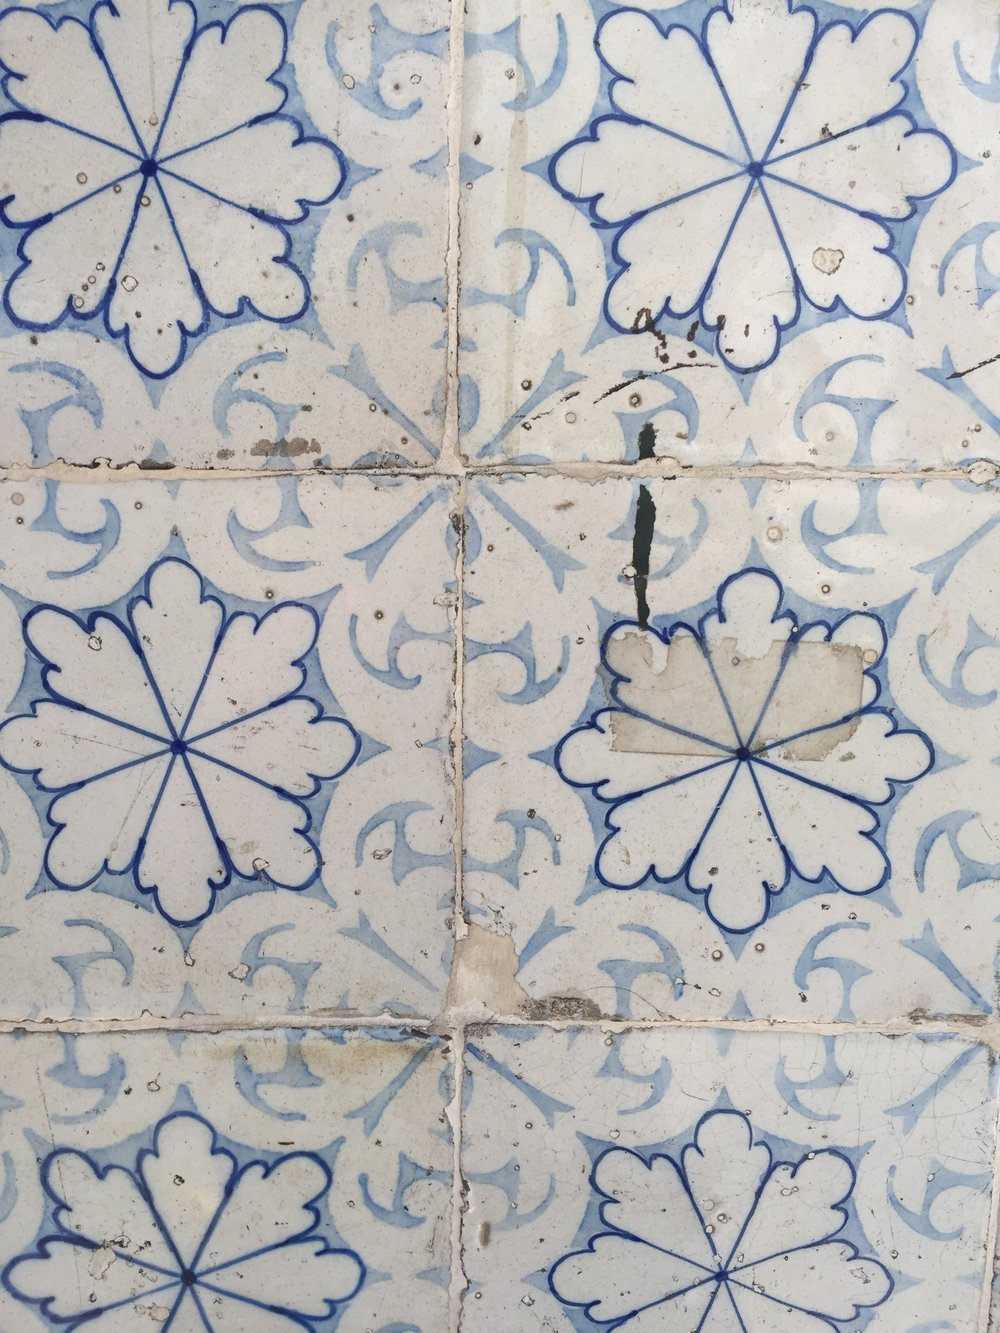 The incredible tiles of Portugal. These were on the outside of a building in Lisbon.